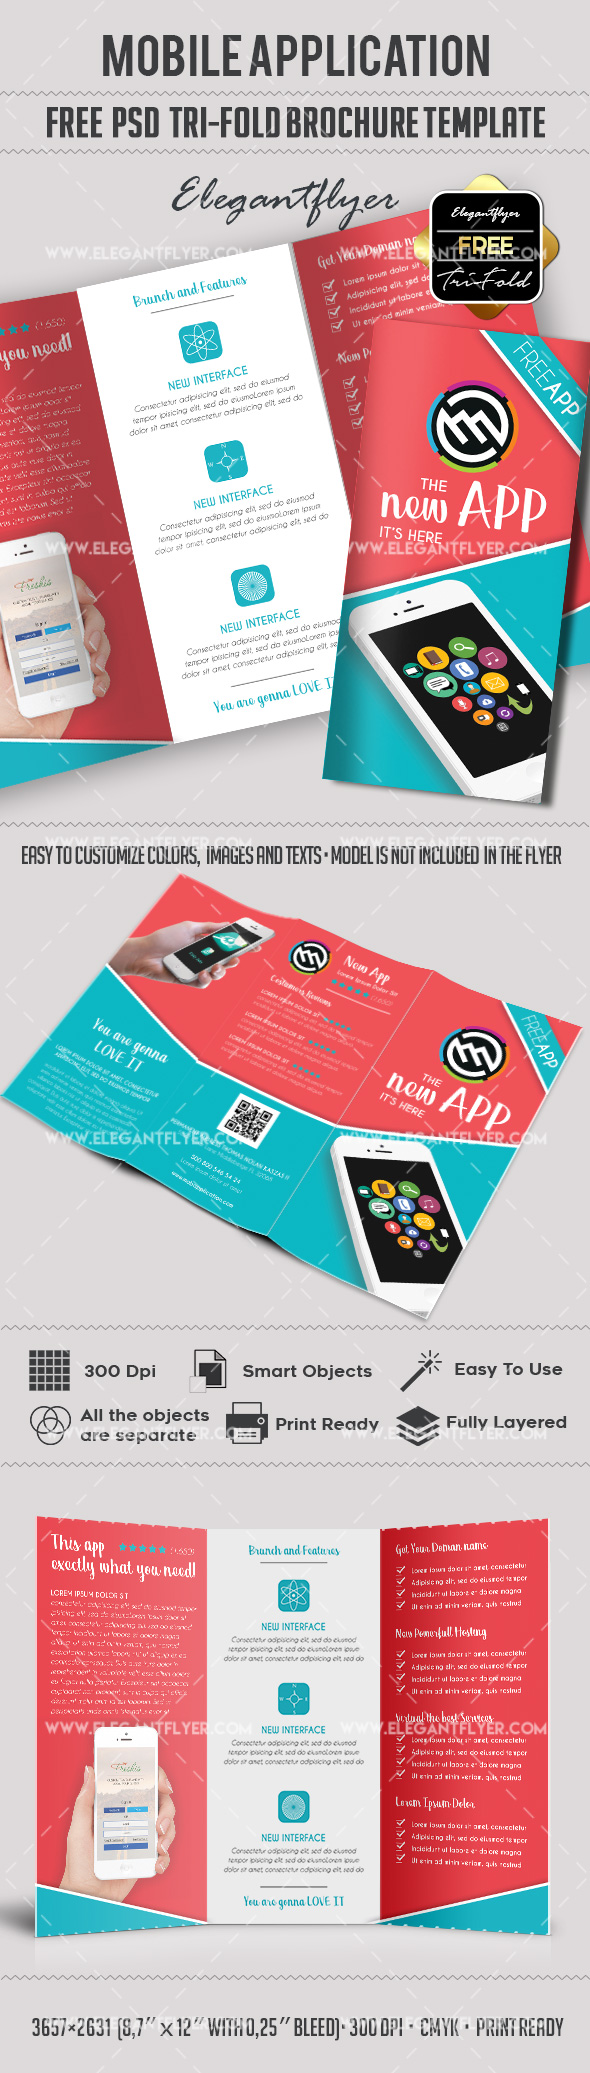 Free mobile application tri fold psd brochure by for Free online tri fold brochure template